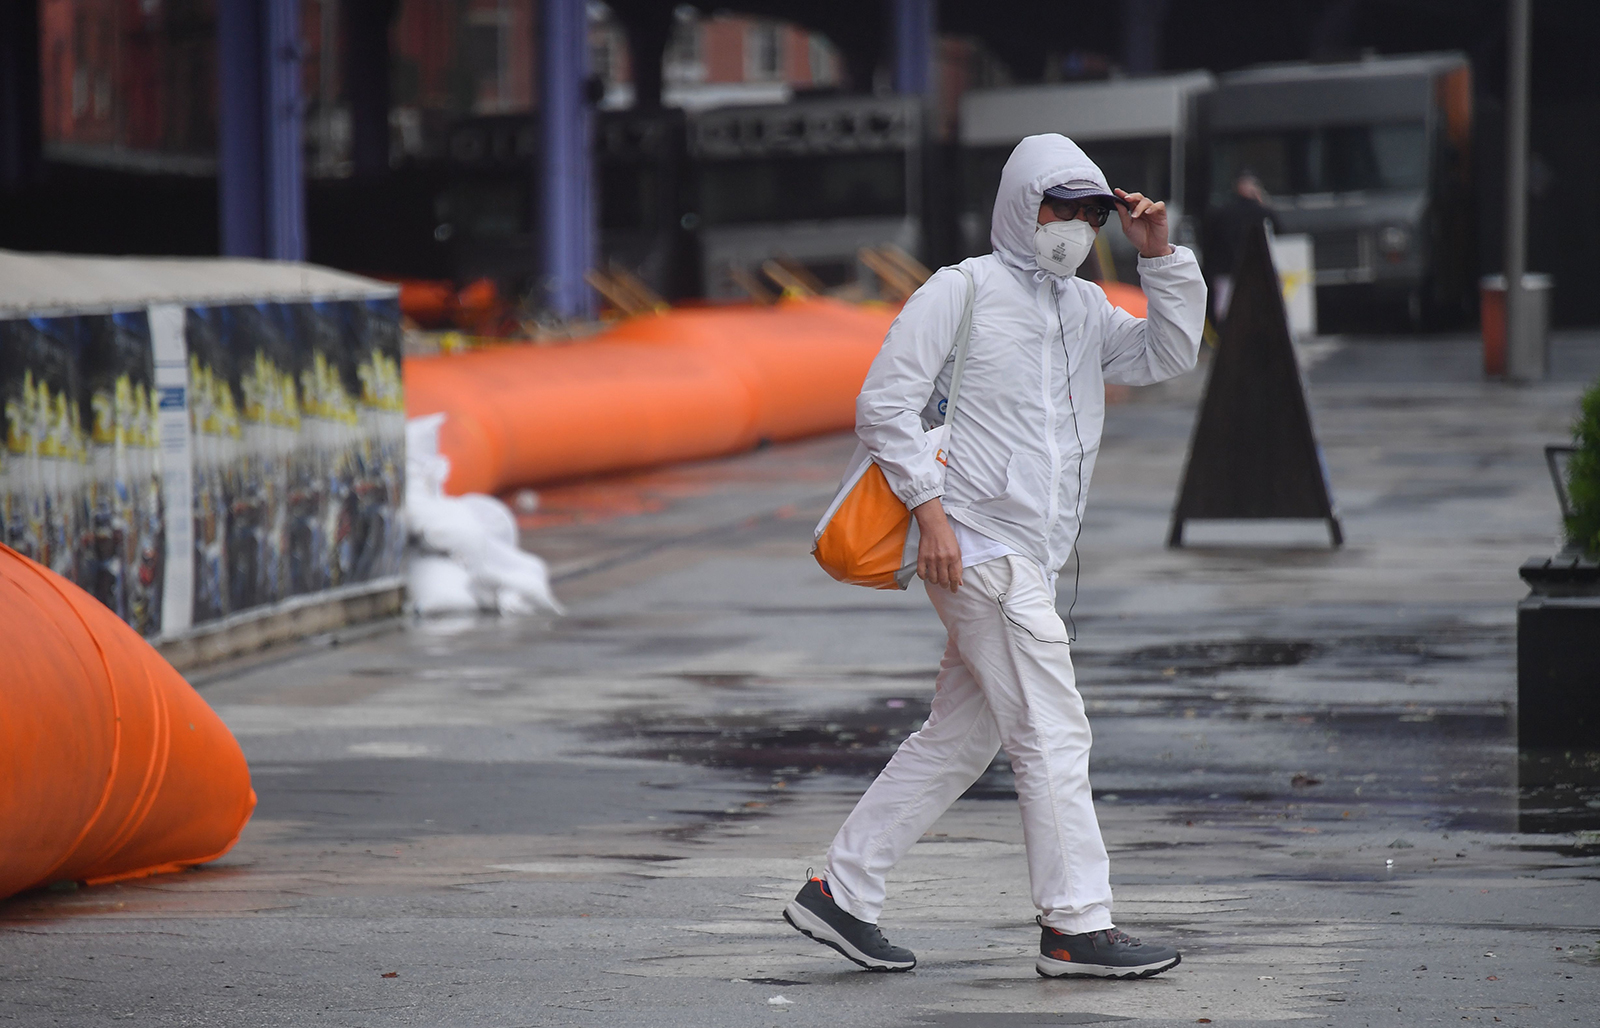 A person walks past flood barriers in lower Manhattan as Tropical Storm Isaias approaches New York City on August 4.